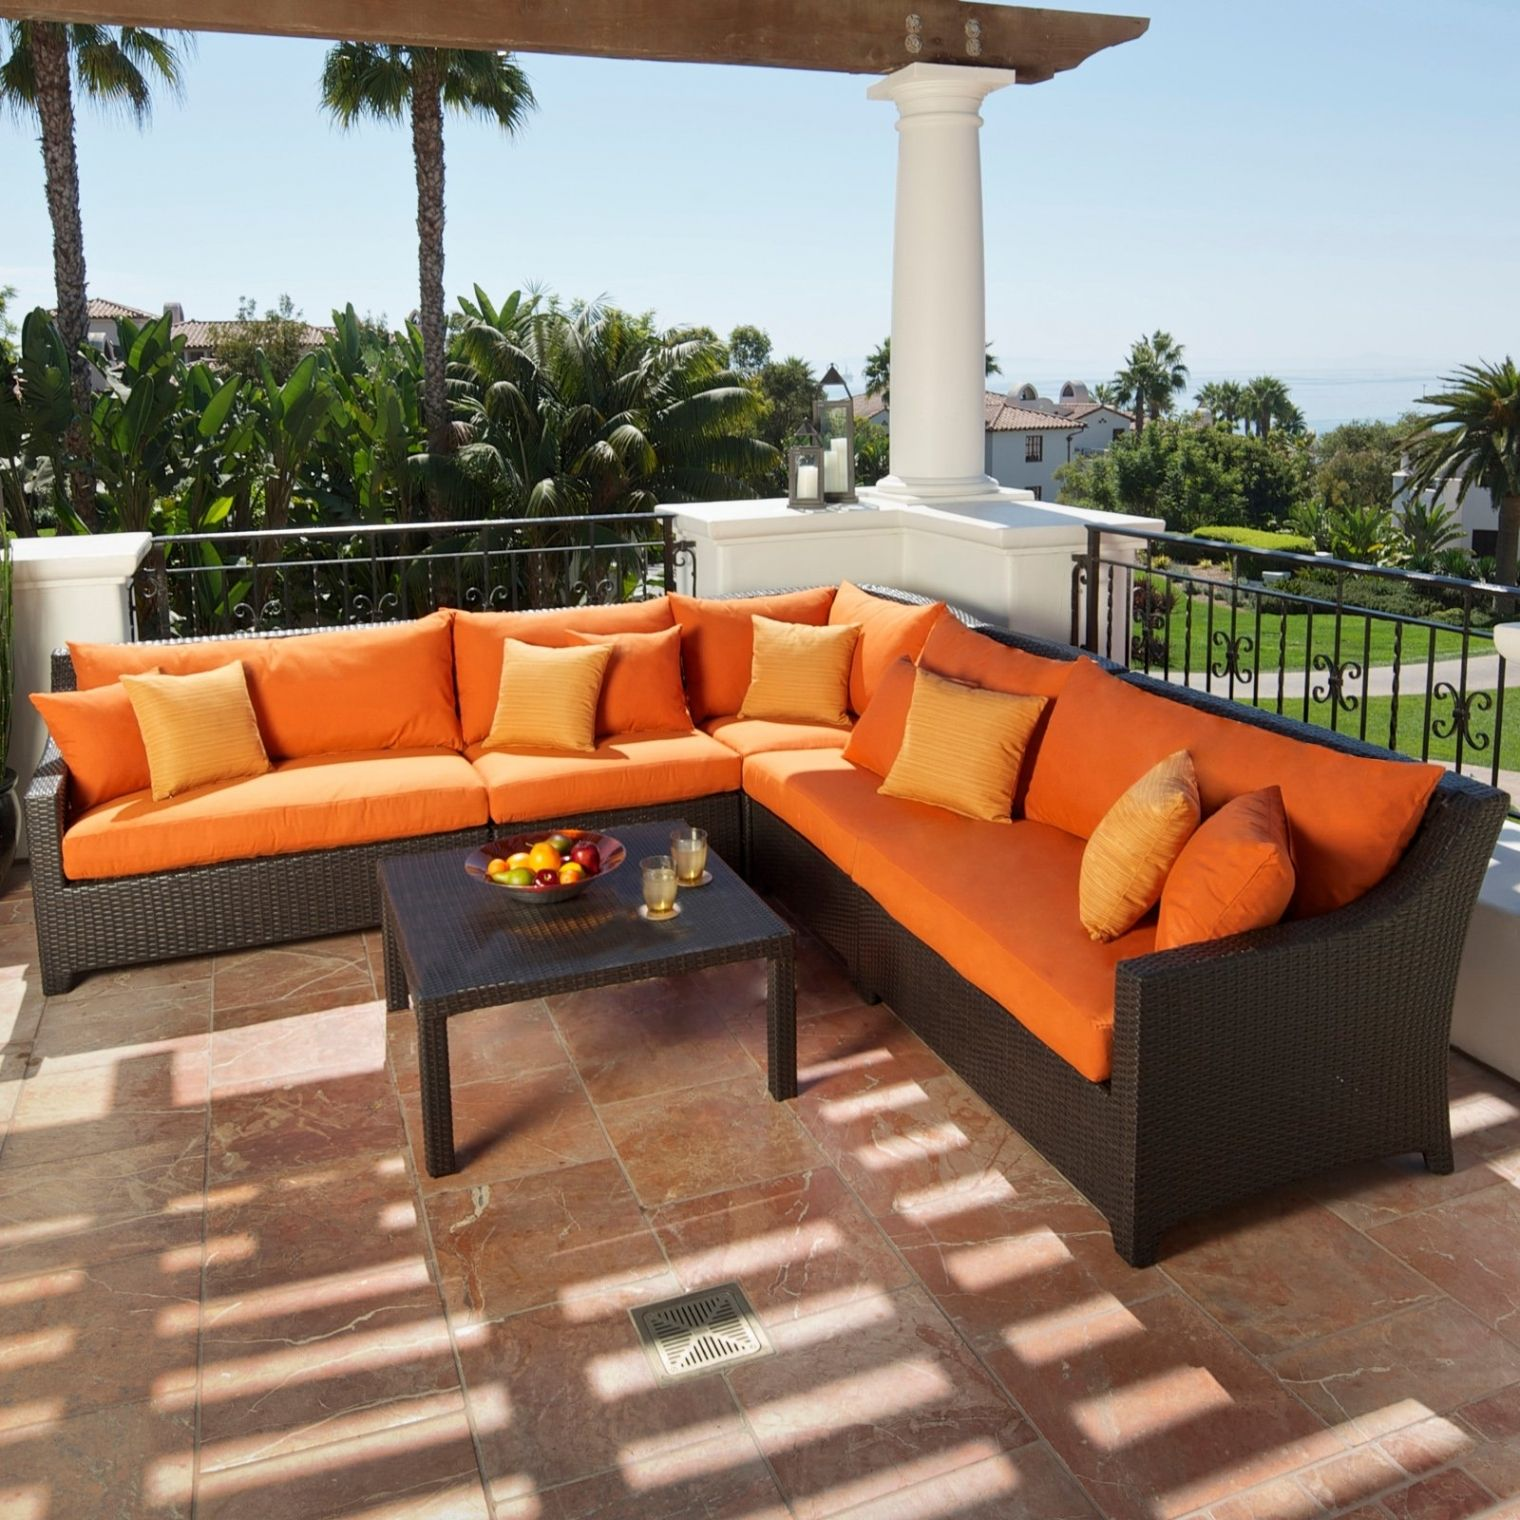 Outdoor Furniture Brands List Luxury Furniture Best